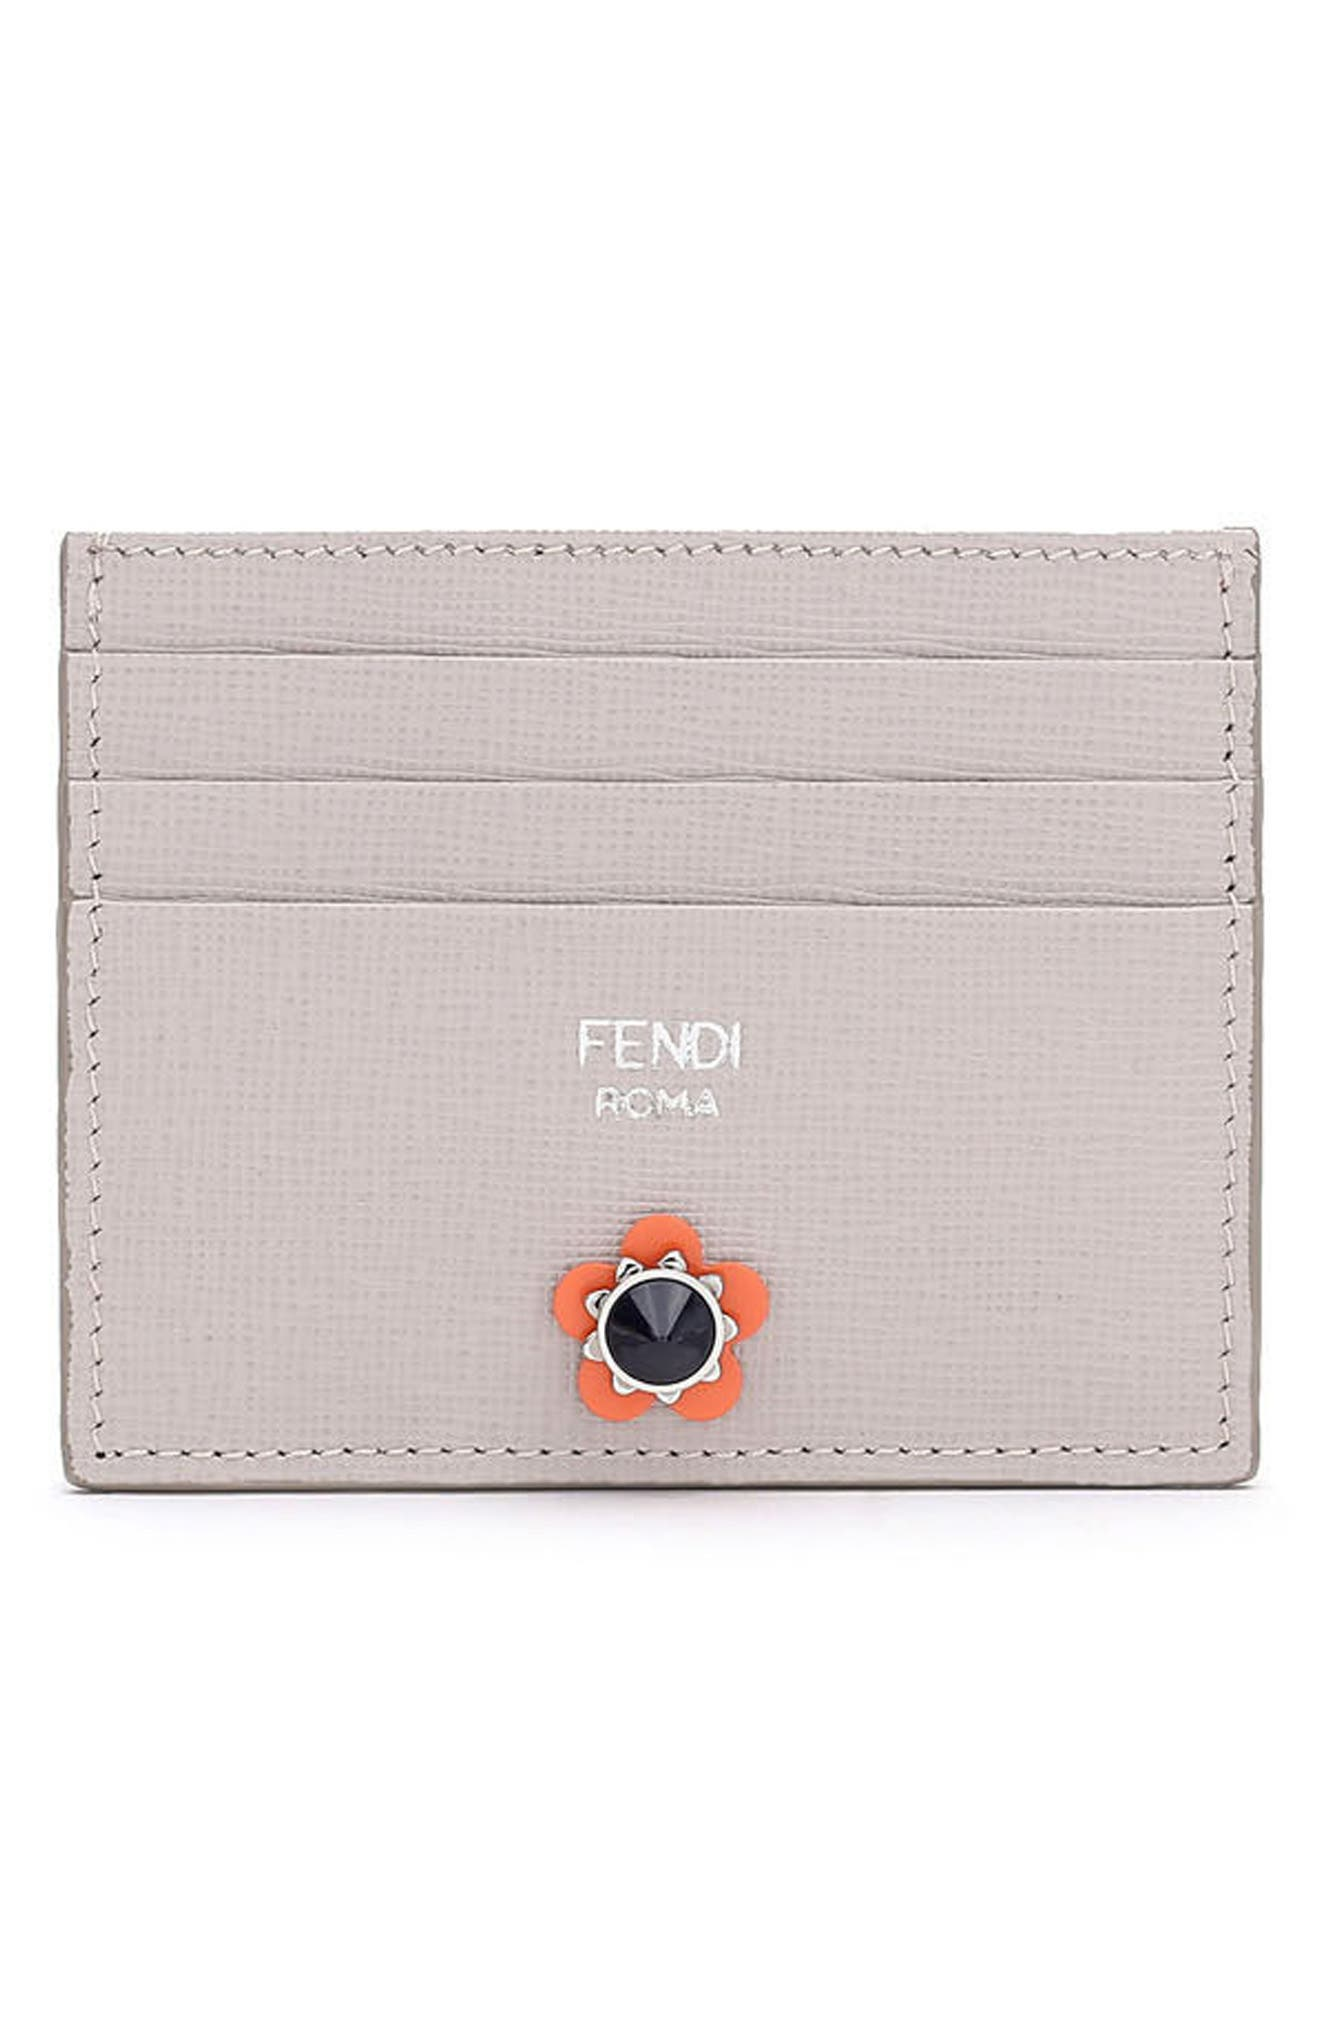 FENDI Flowerland Elite Leather Card Case